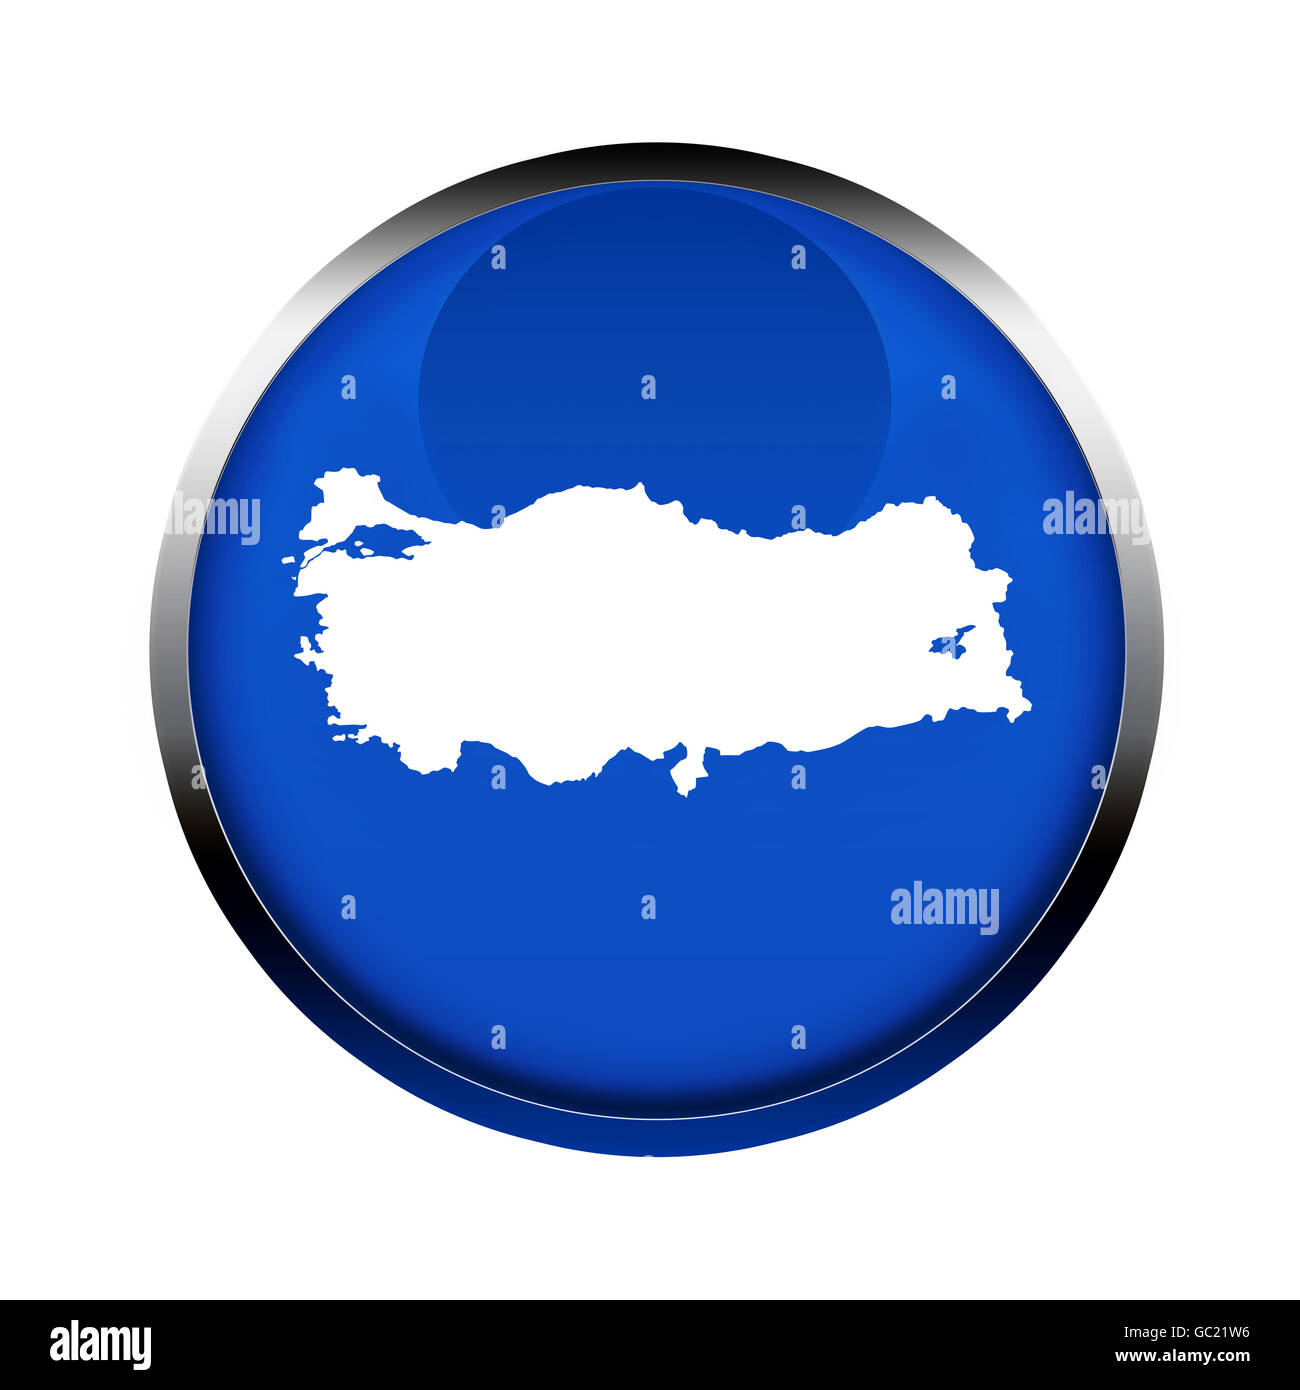 Turkey map button in the colors of the European Union. - Stock Image